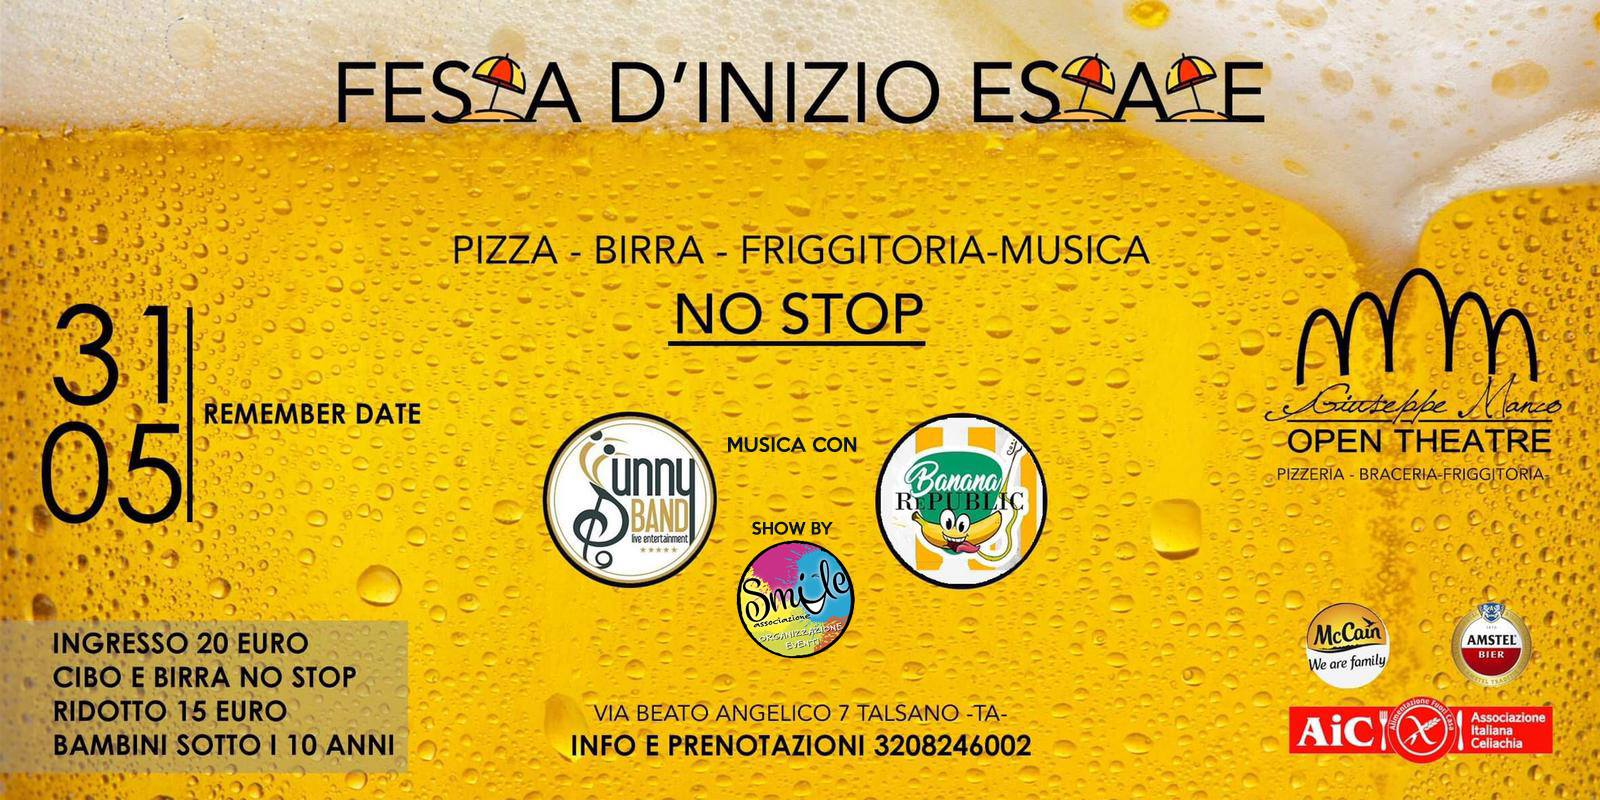 31 maggio: Festa d'inizio estate al Teatro Art Club Restaurant and Pizza